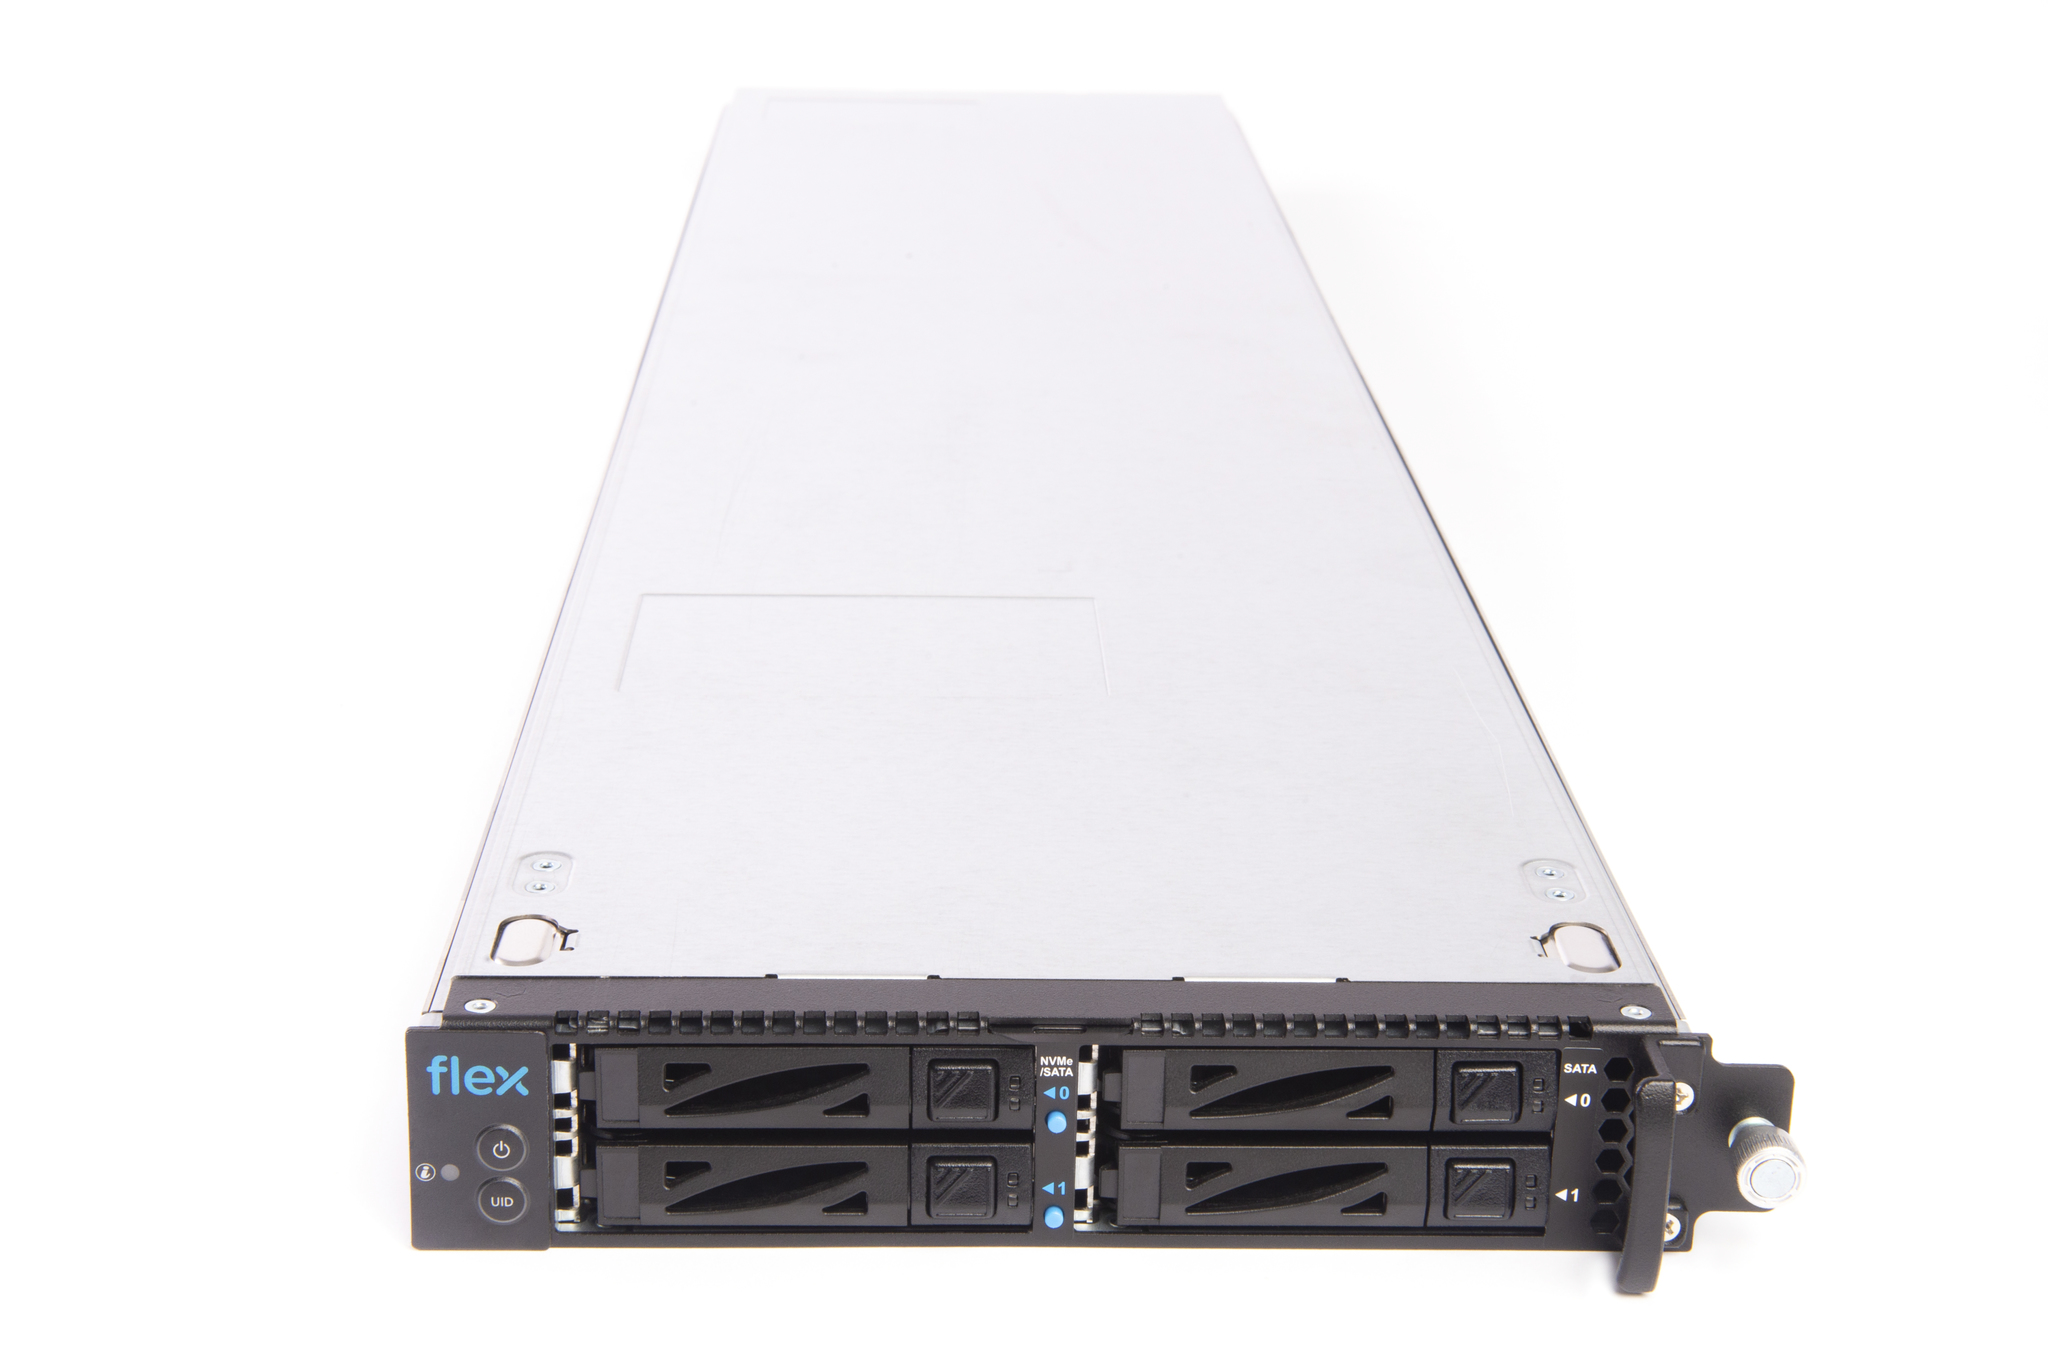 Flex BC5152 Skylake Server Brick